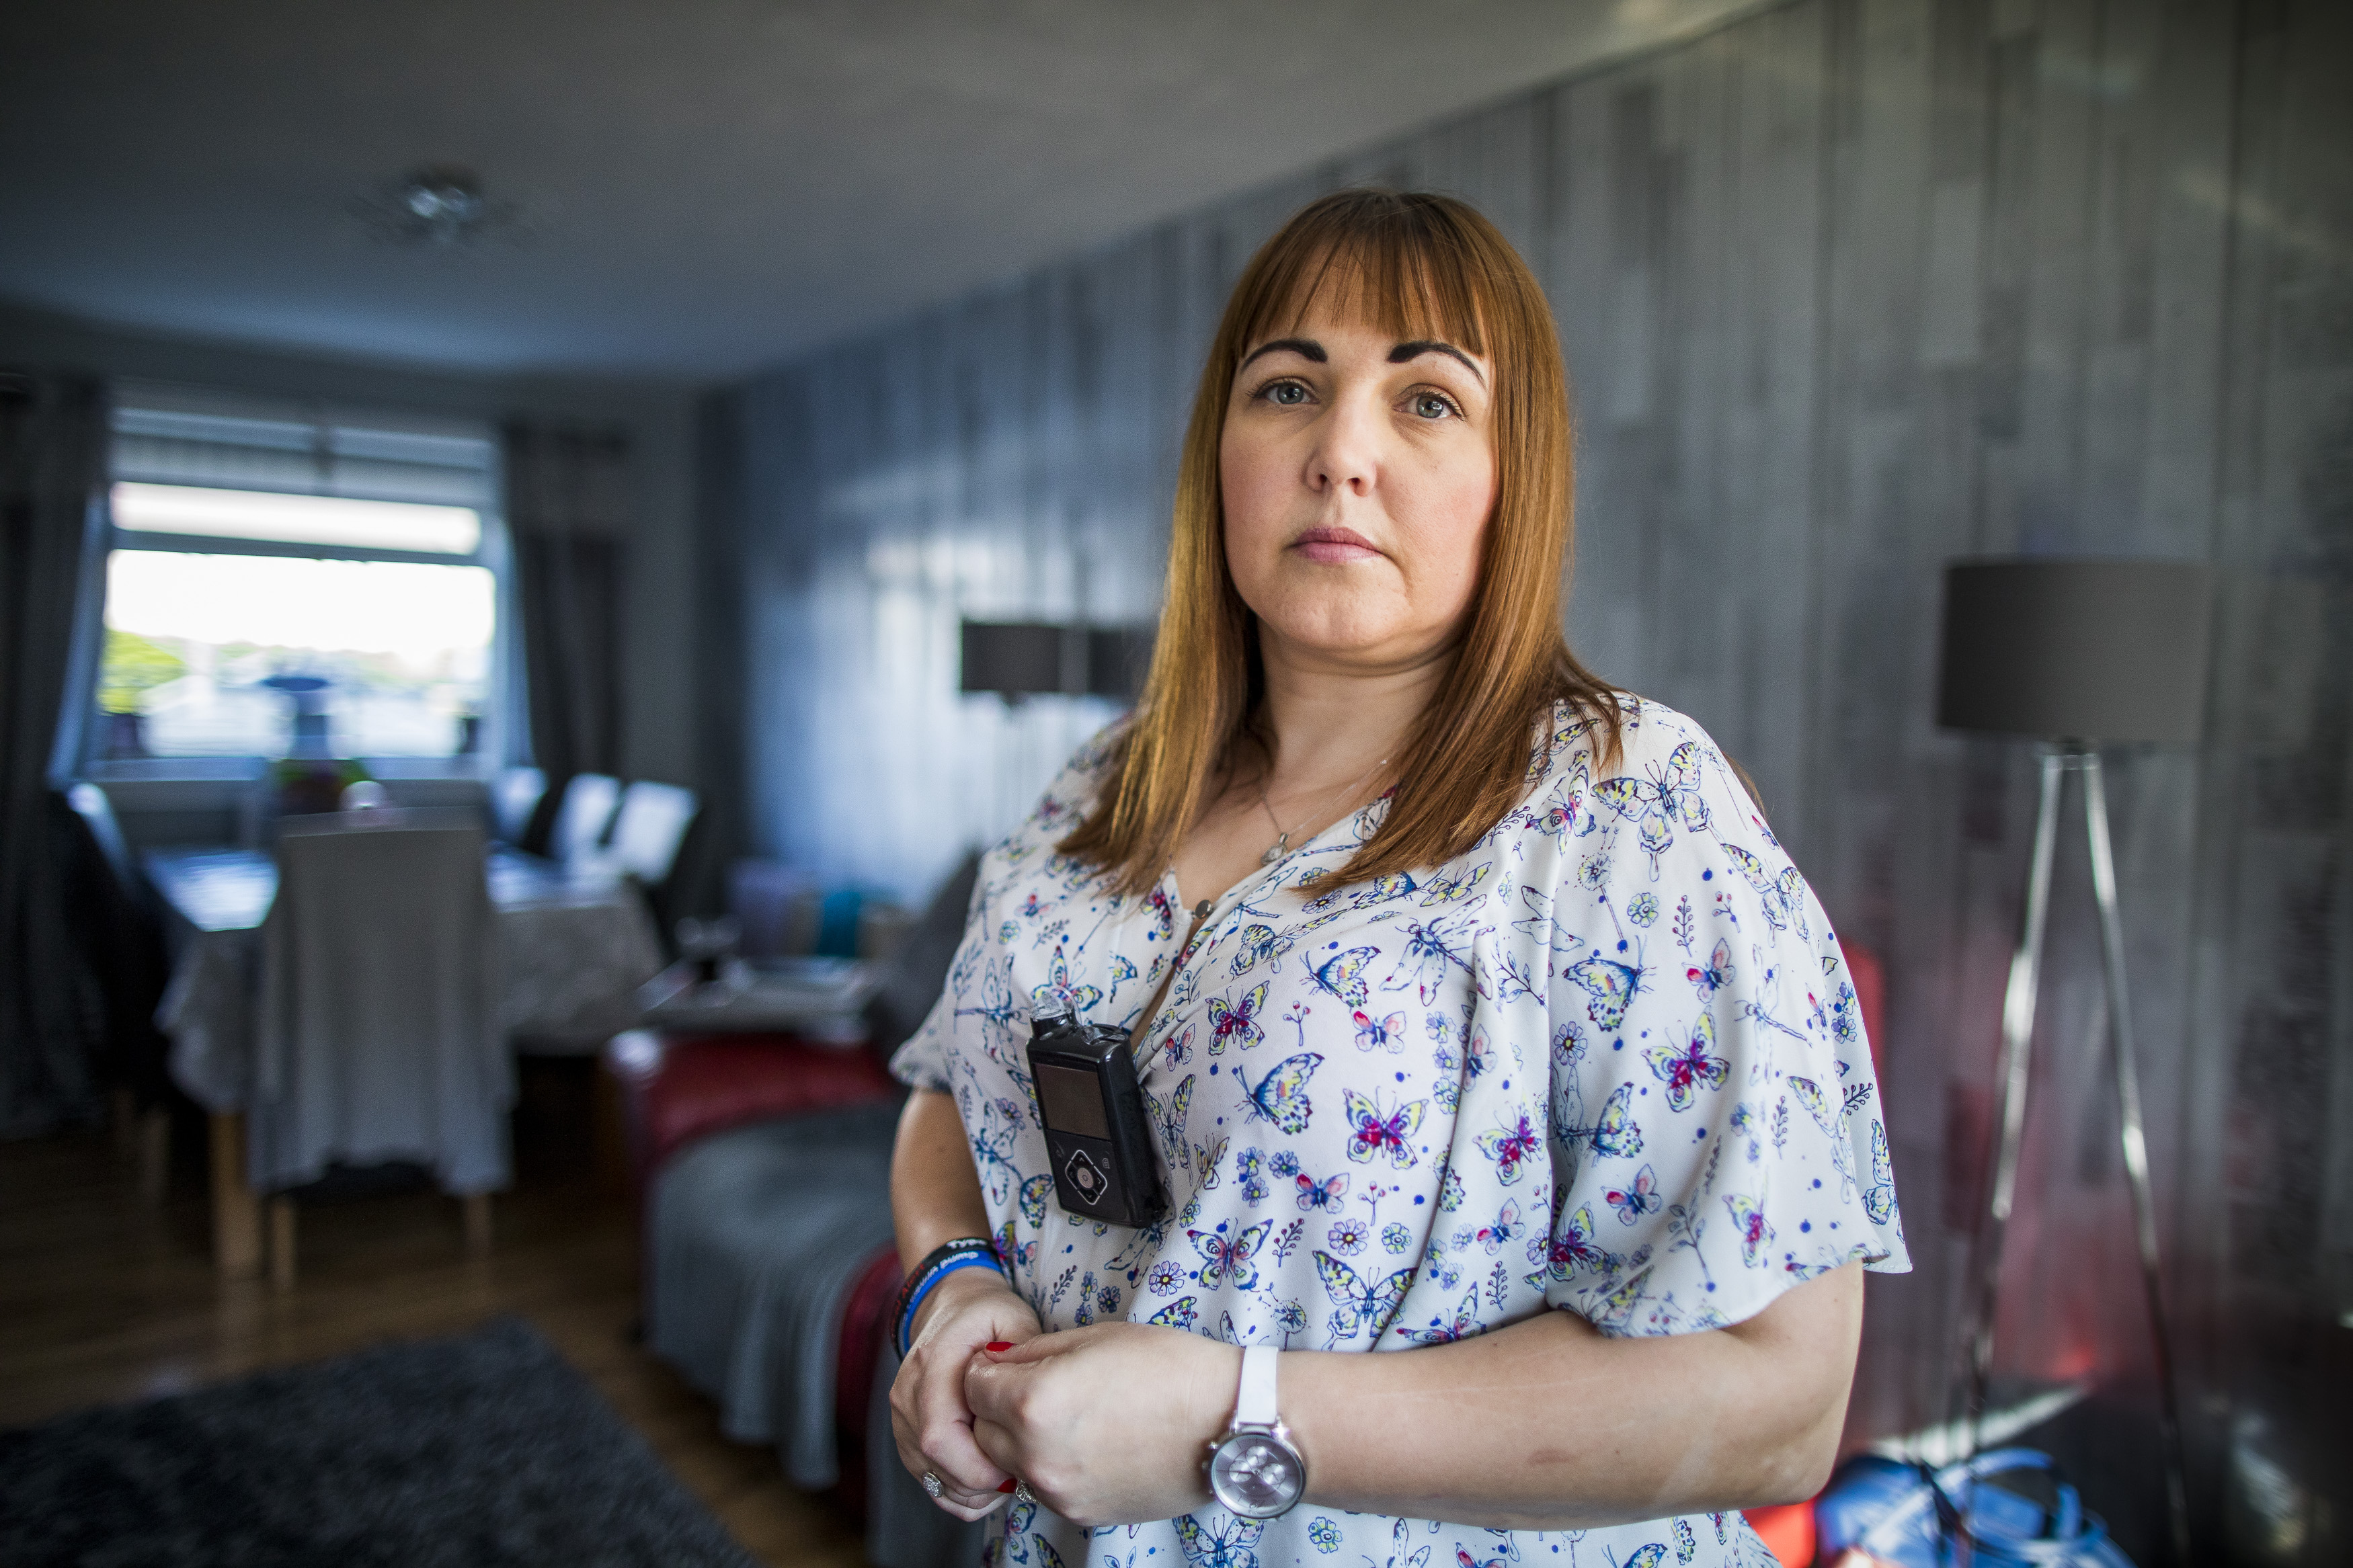 Donna Walker from Bridge of Weir is Diabetic and relies on blood testing strips to get her Insulin dose correct but with Brexit looming there may be a shortage